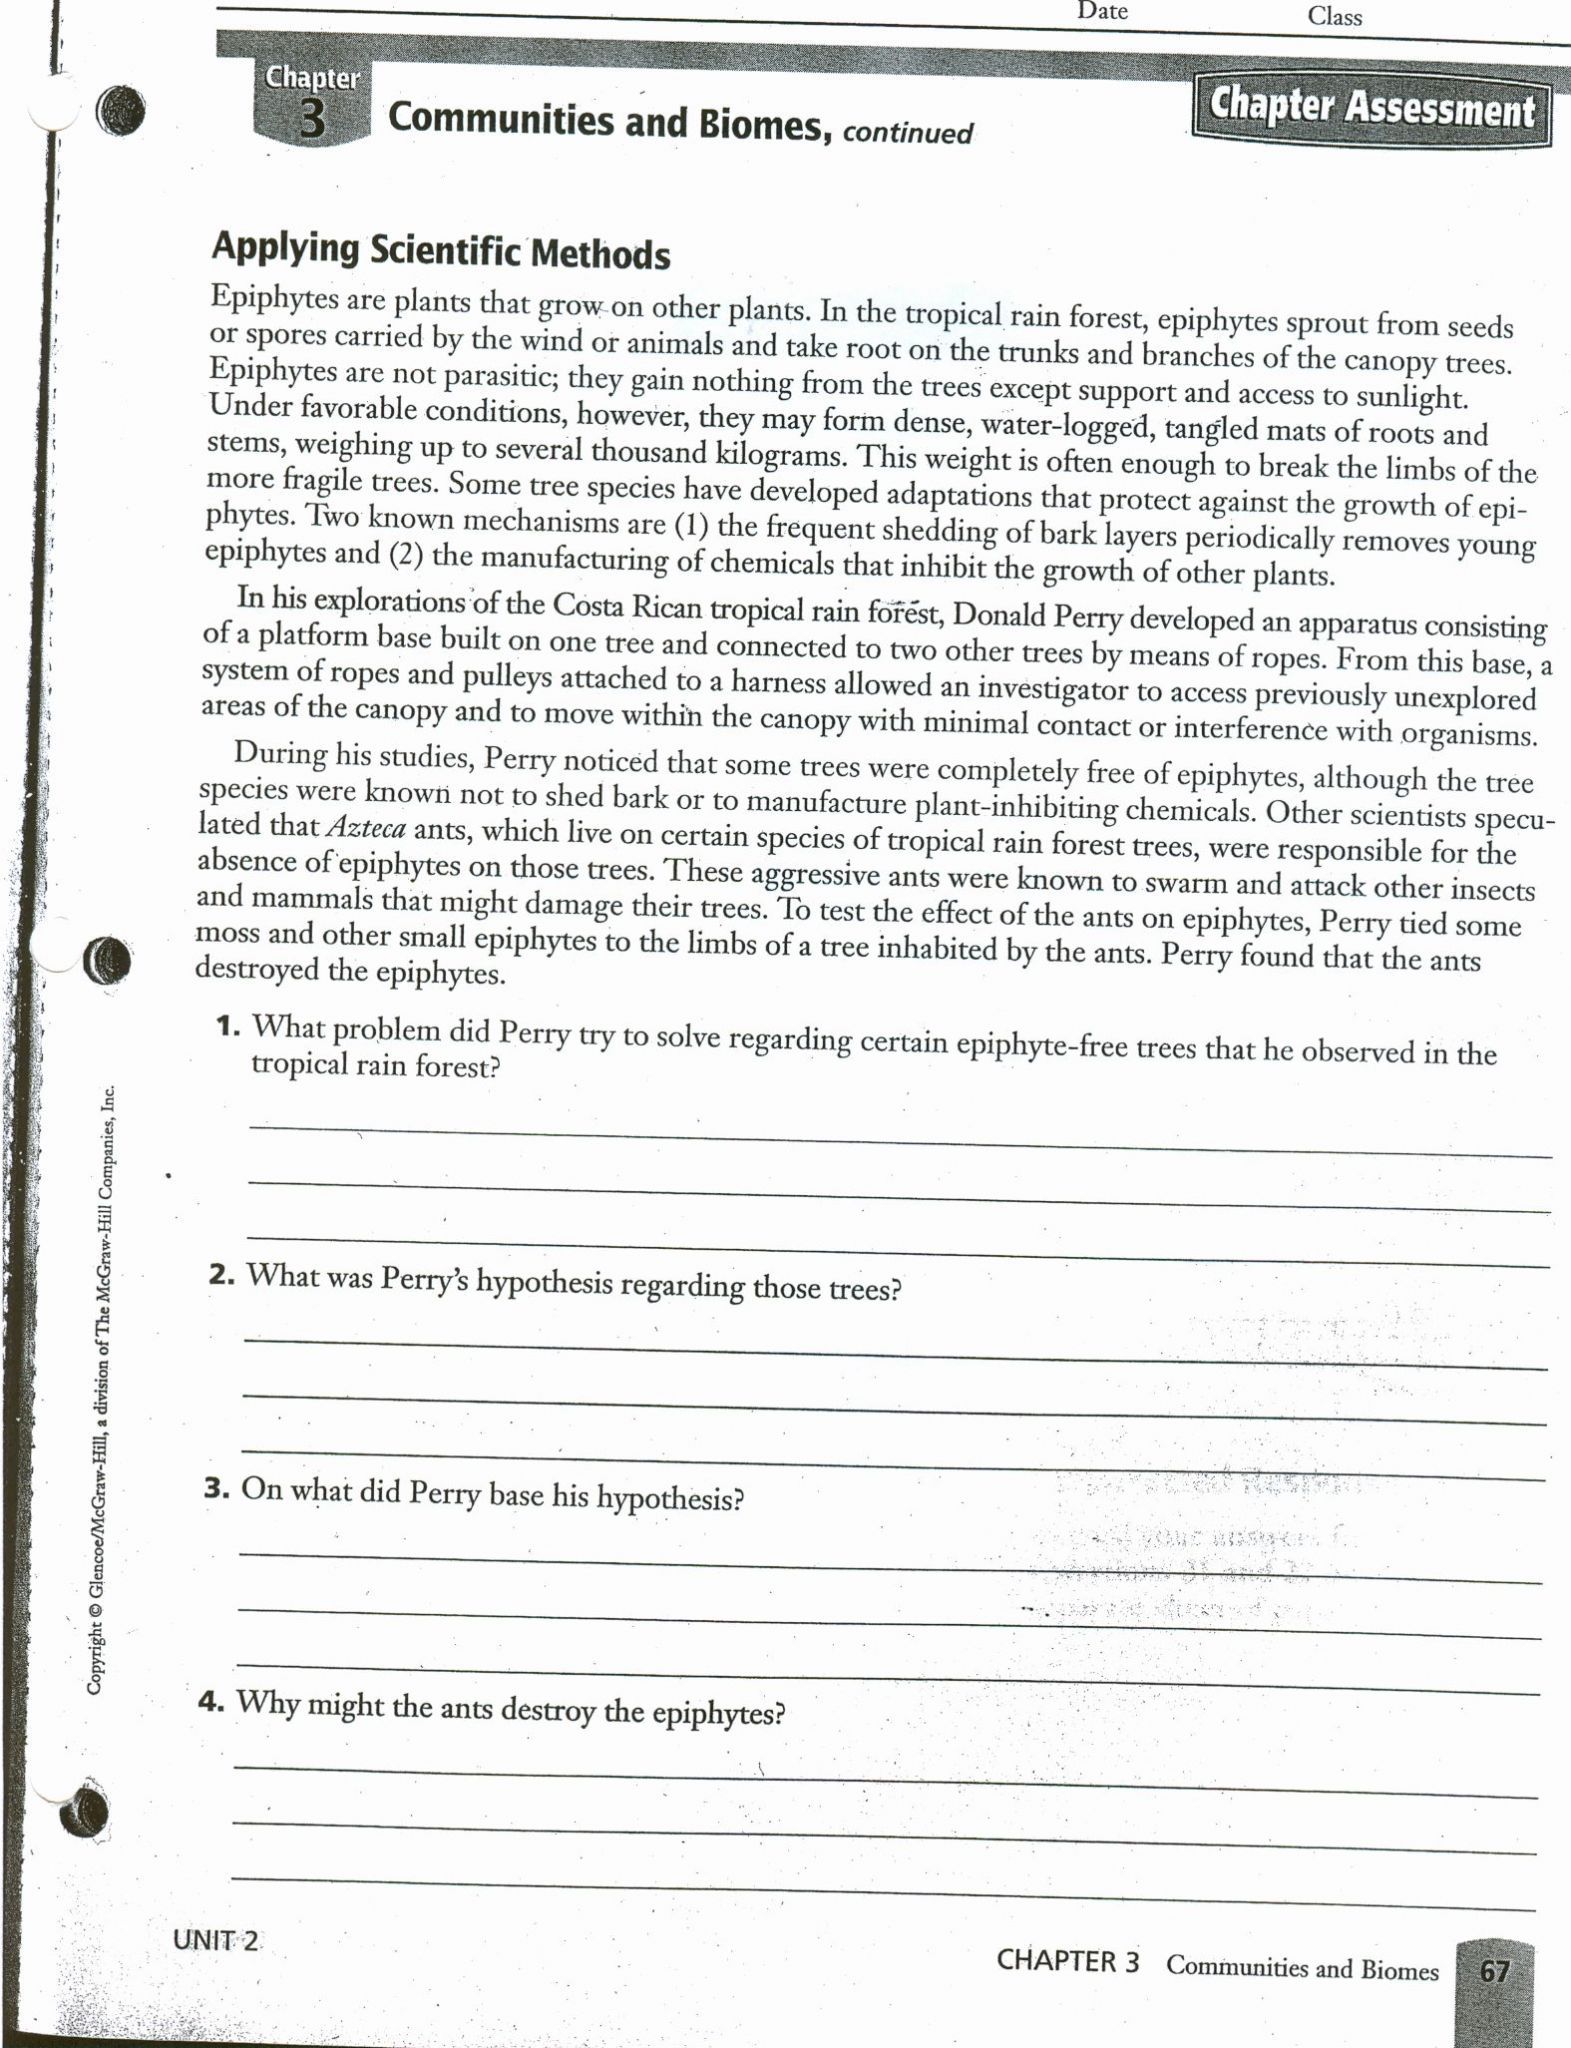 Printables Of Changing The Constitution Worksheet Answers